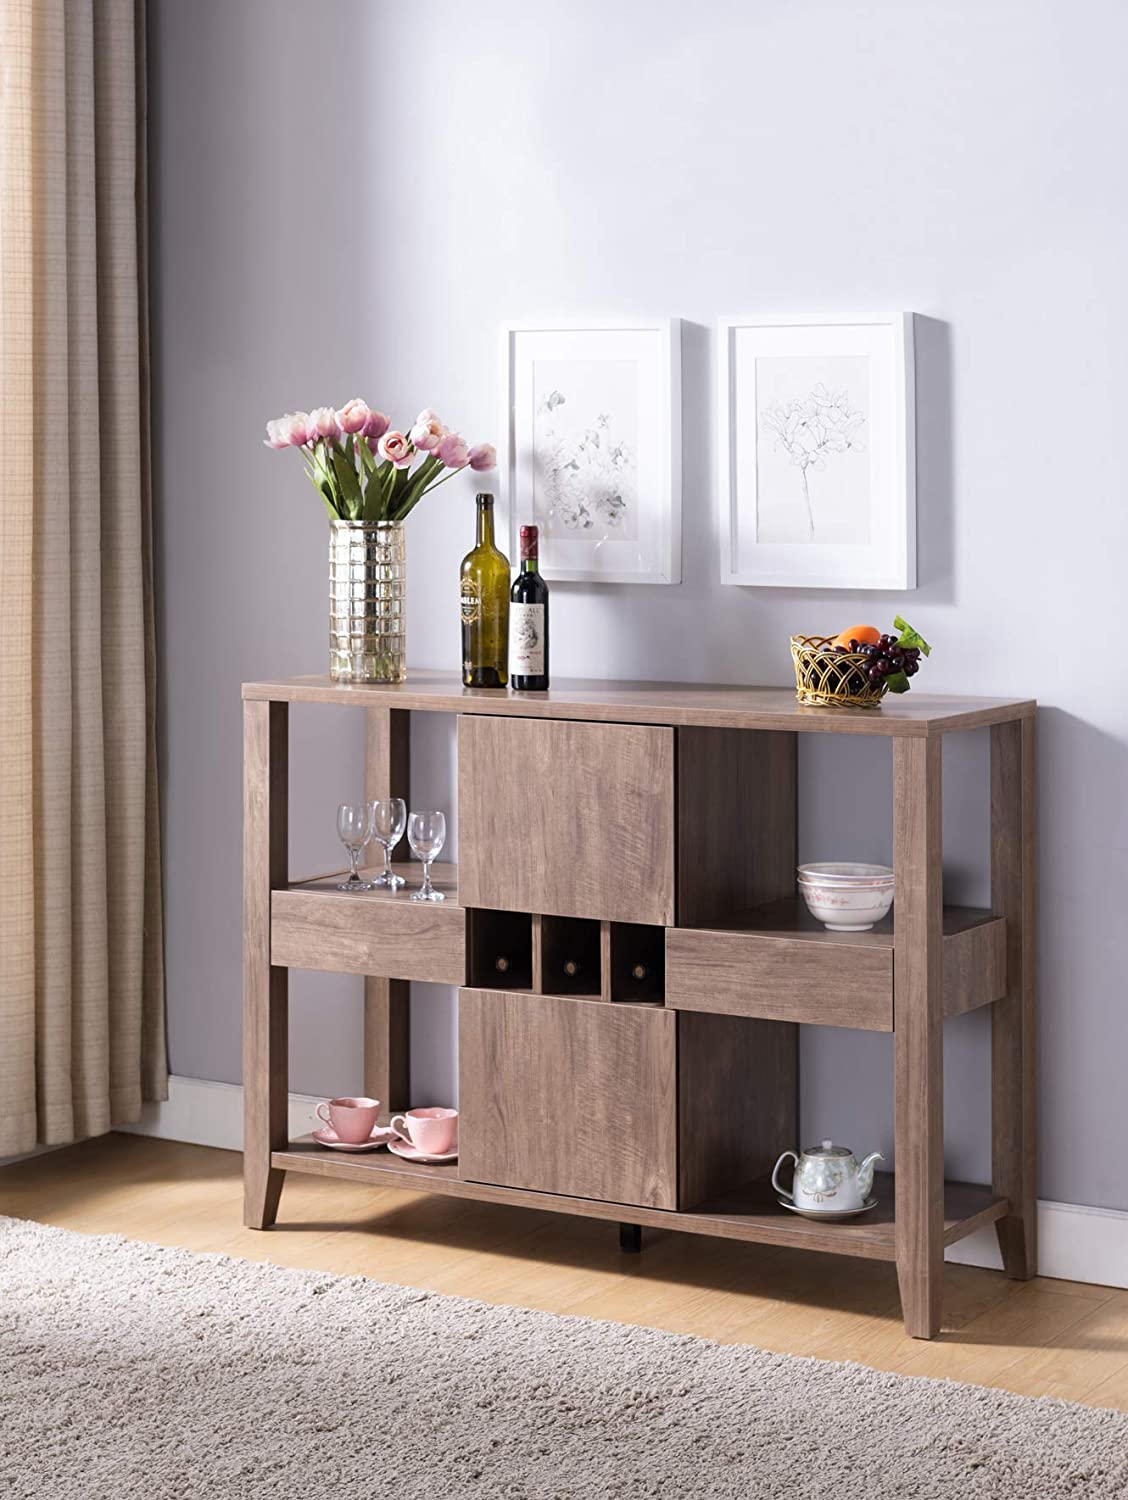 Idusa 182315 Modern Buffet Sideboard For Dining Room Storage Finished In A Hazelnut Color Wine Compartment